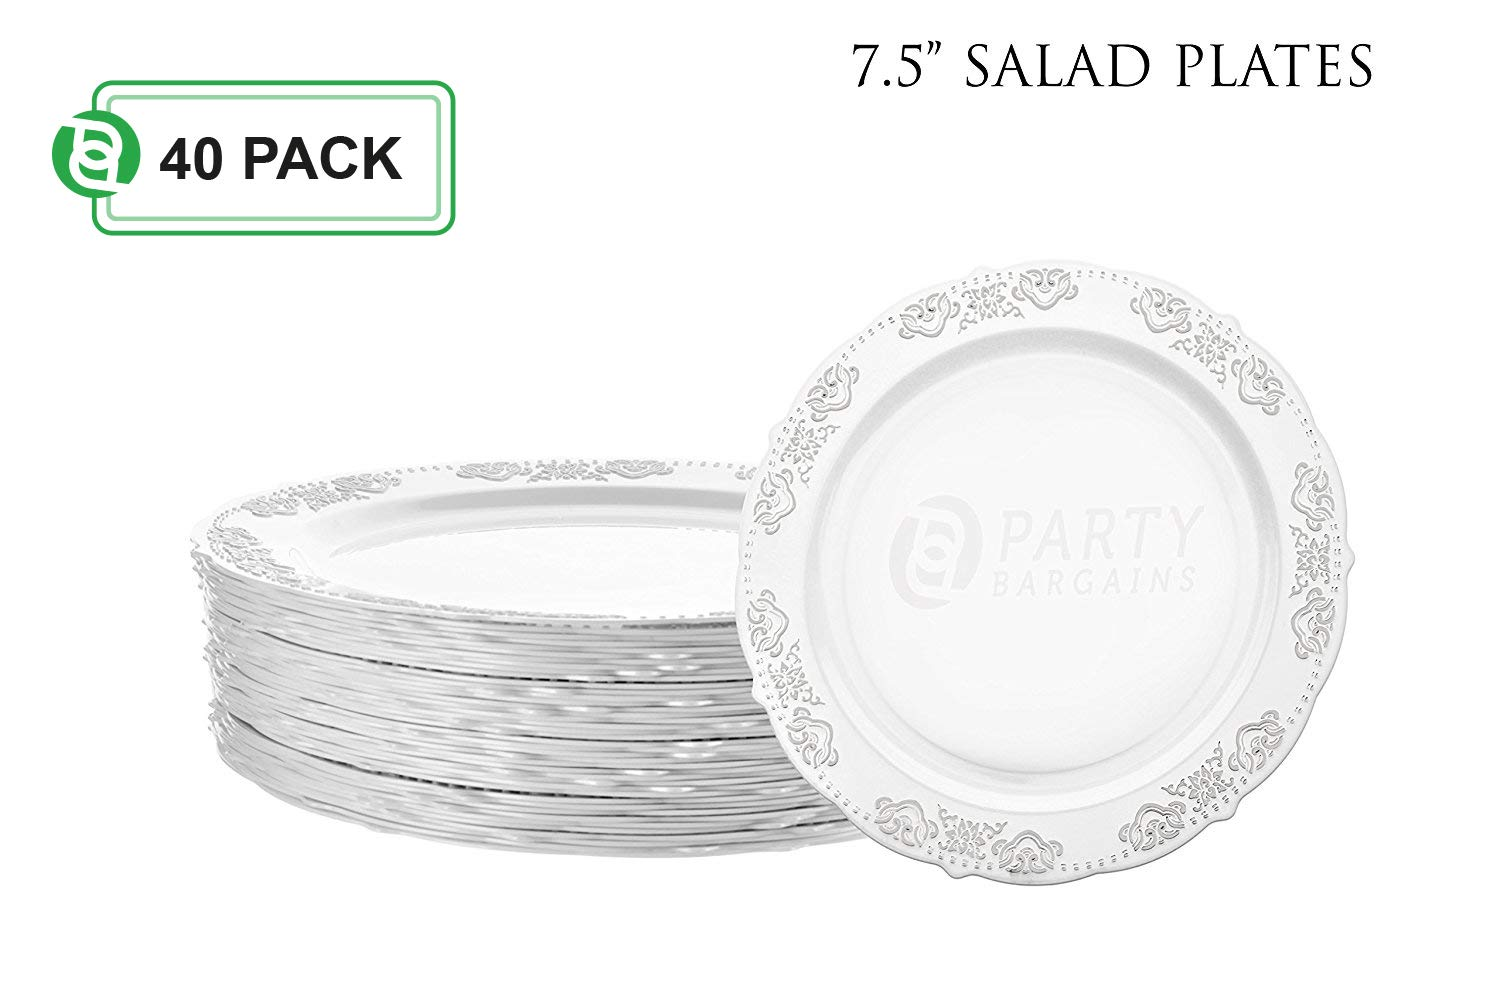 Party Bargains Disposable Plastic Plates | Heavyweight & Premium Quality China Like Dinnerware for Weddings, Bridal Showers, Engagement Parties & More | 7.5 Inches Silver Dinner Plates | 40 Count by Party Bargains